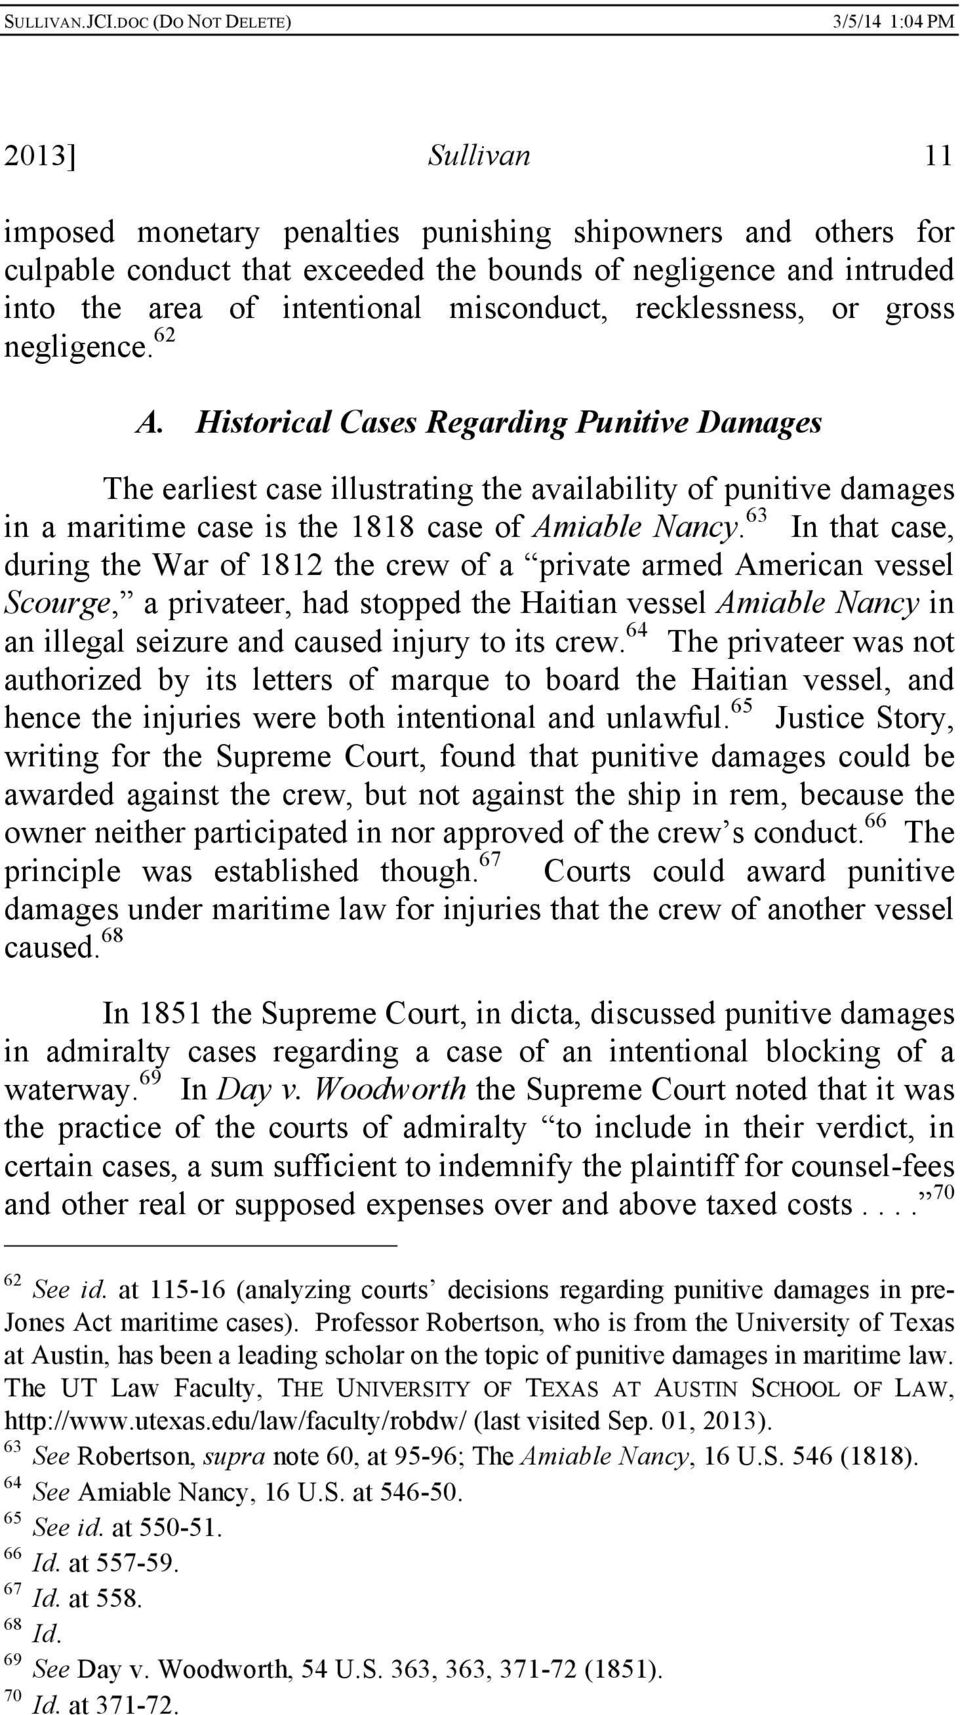 Historical Cases Regarding Punitive Damages The earliest case illustrating the availability of punitive damages in a maritime case is the 1818 case of Amiable Nancy.